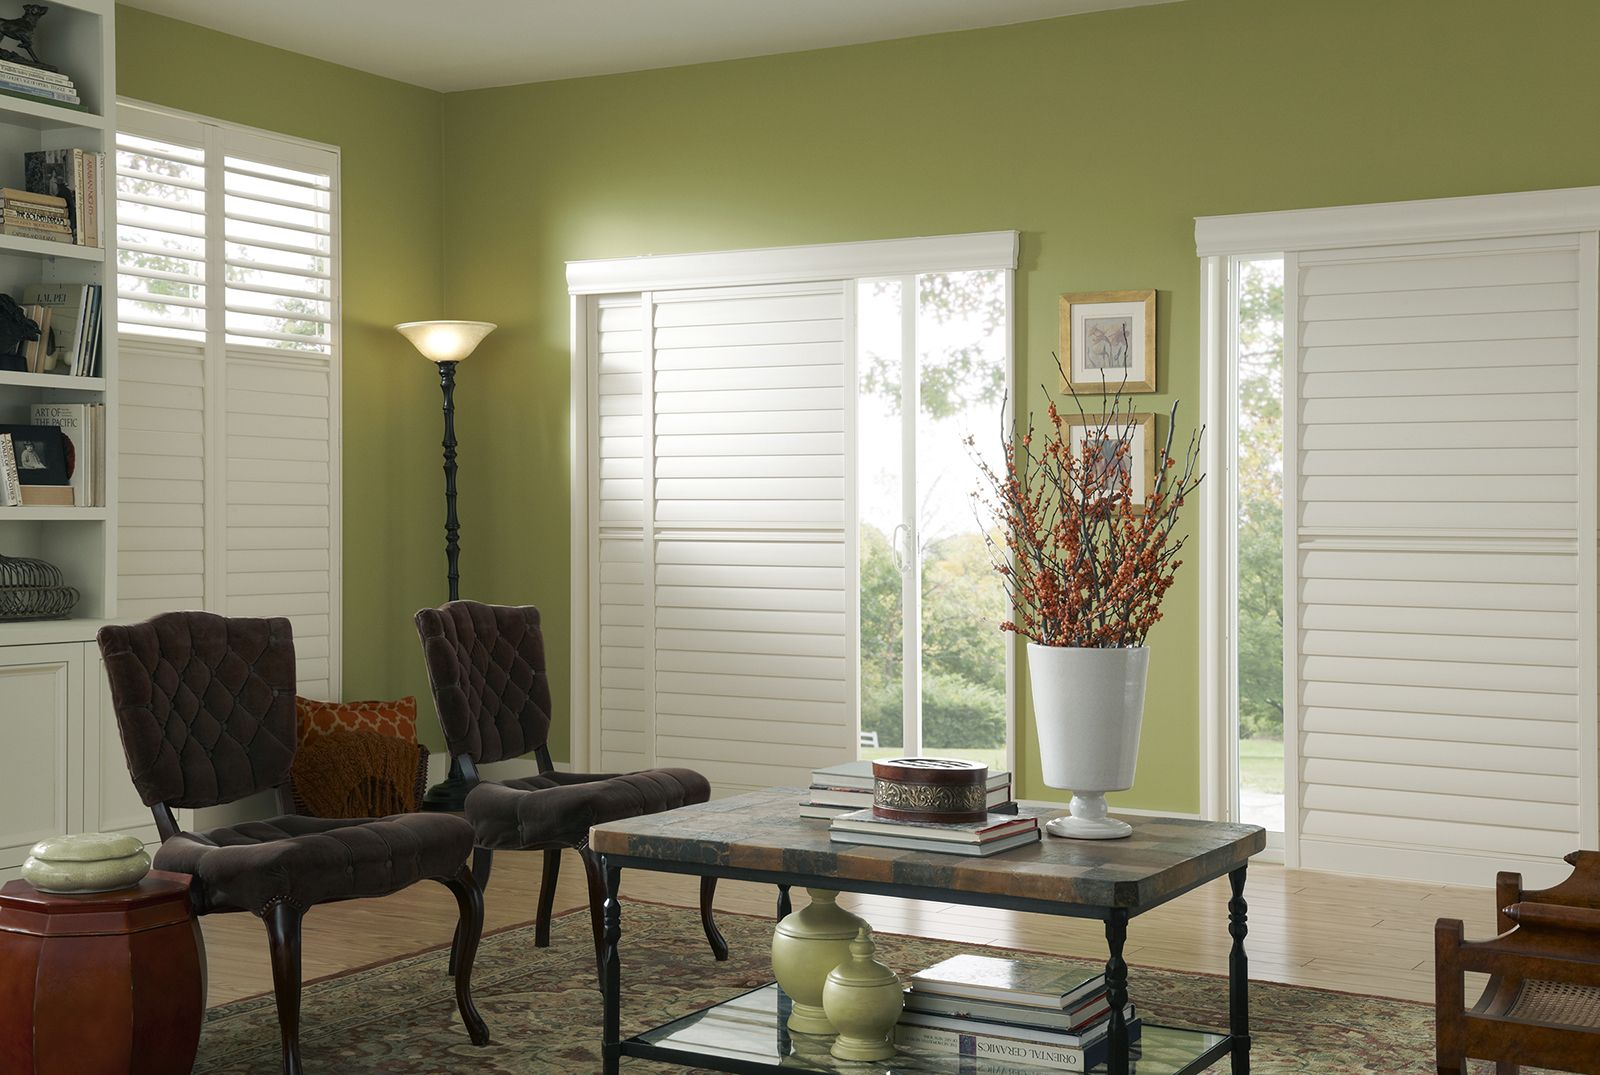 Vanilla • Two panel By-Pass • 3½ inch louver • 5 inch deco valance • Deluxe Divider Rail • UltraClearview® hidden rear tilt